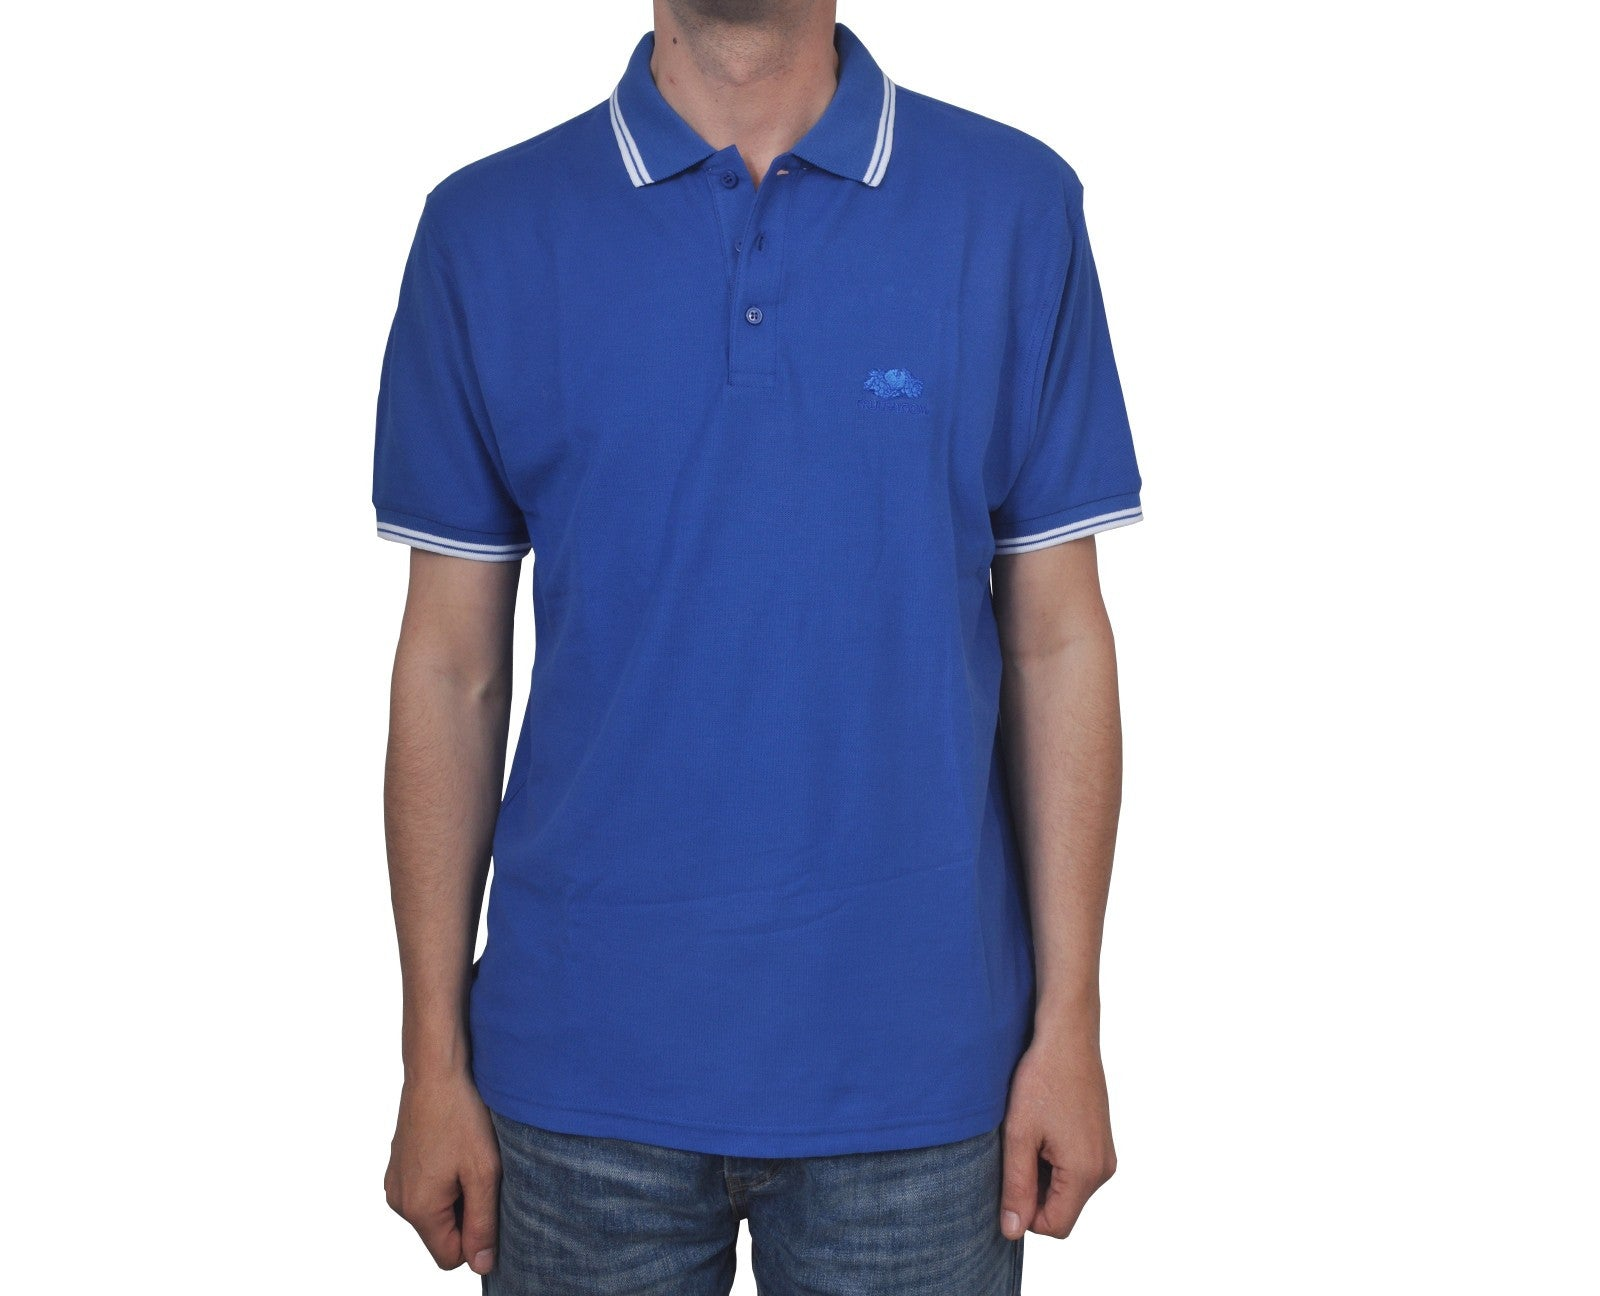 andriki mplouza polo 08-6303 fruit of the loom blue front.jpg v 1495144048 d954b149b0e